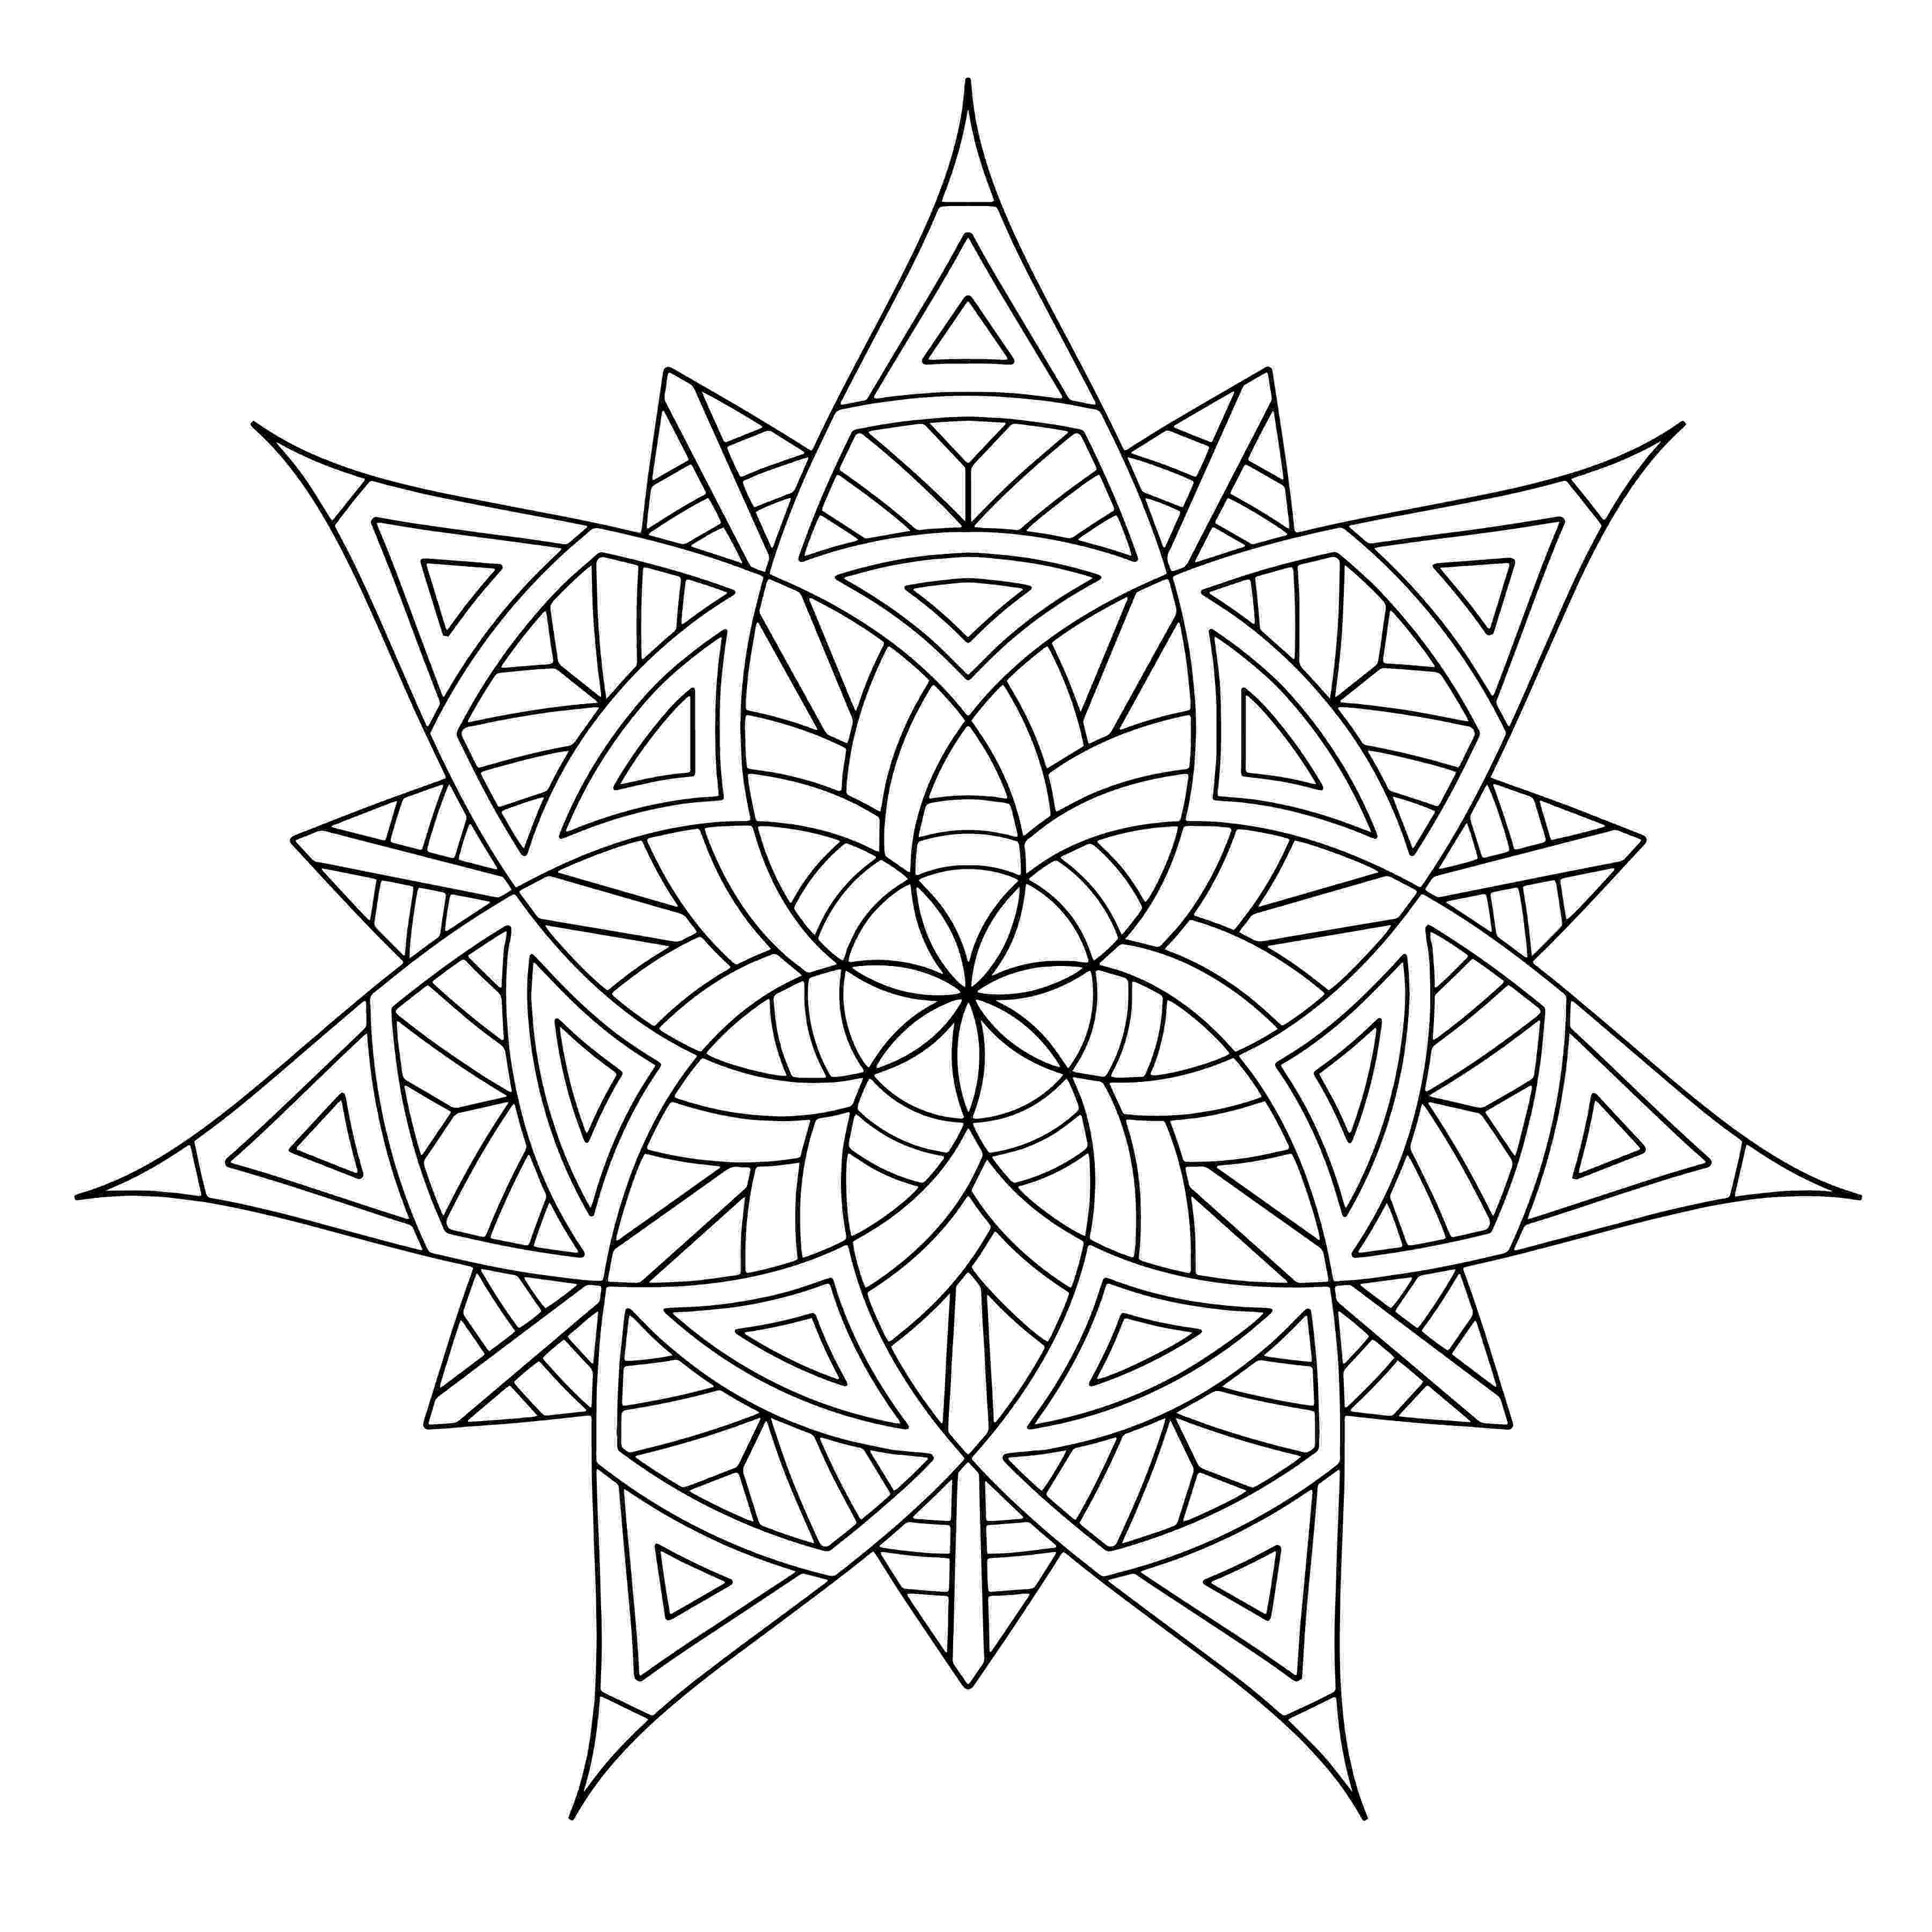 printable colouring patterns free printable abstract coloring pages for adults printable colouring patterns